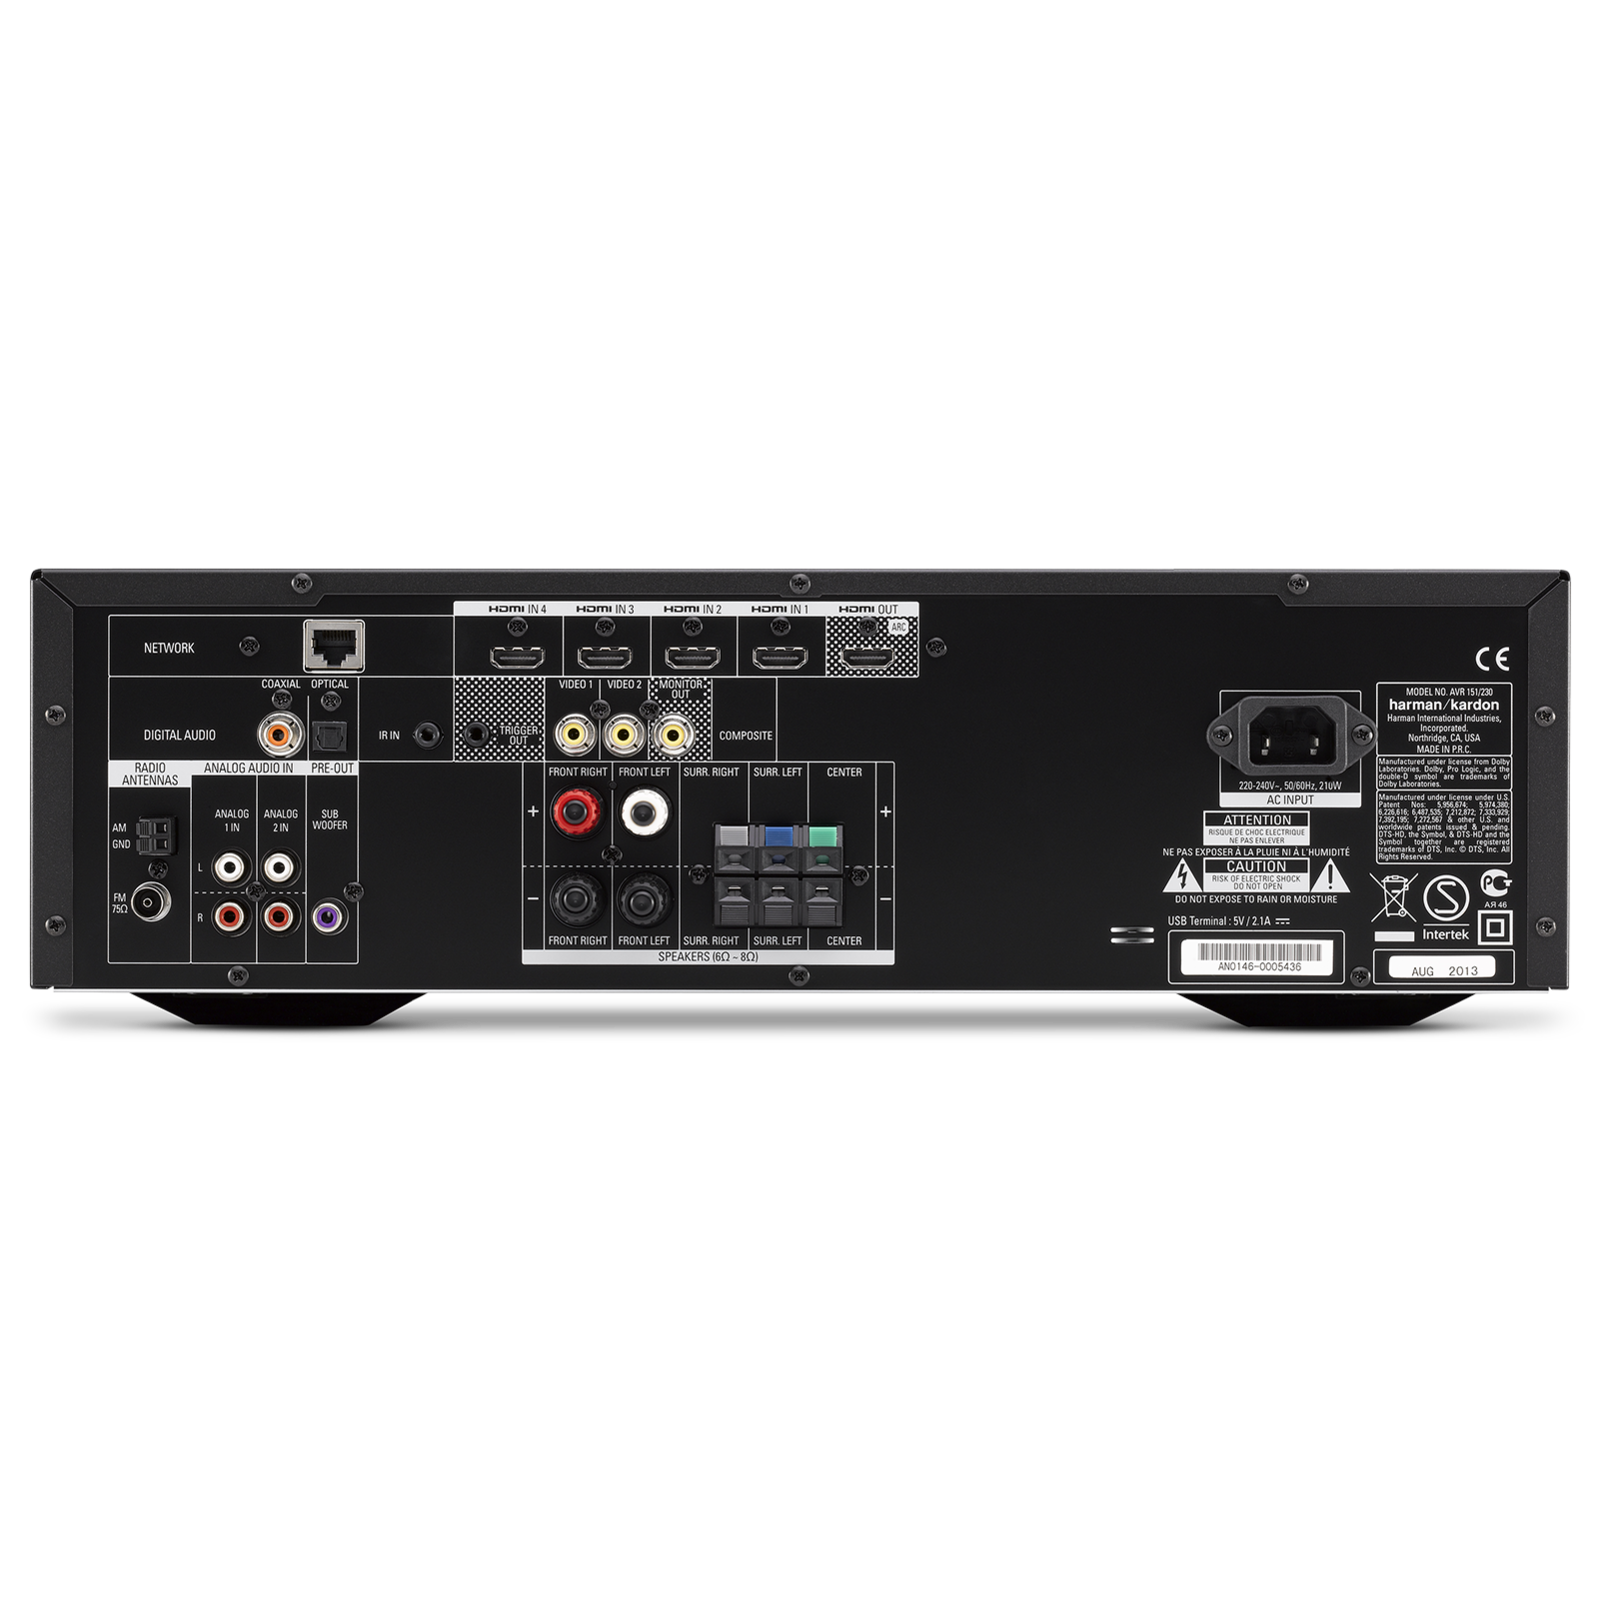 Avr 151 375 Watt 5 1 Channel Networked Audio Video